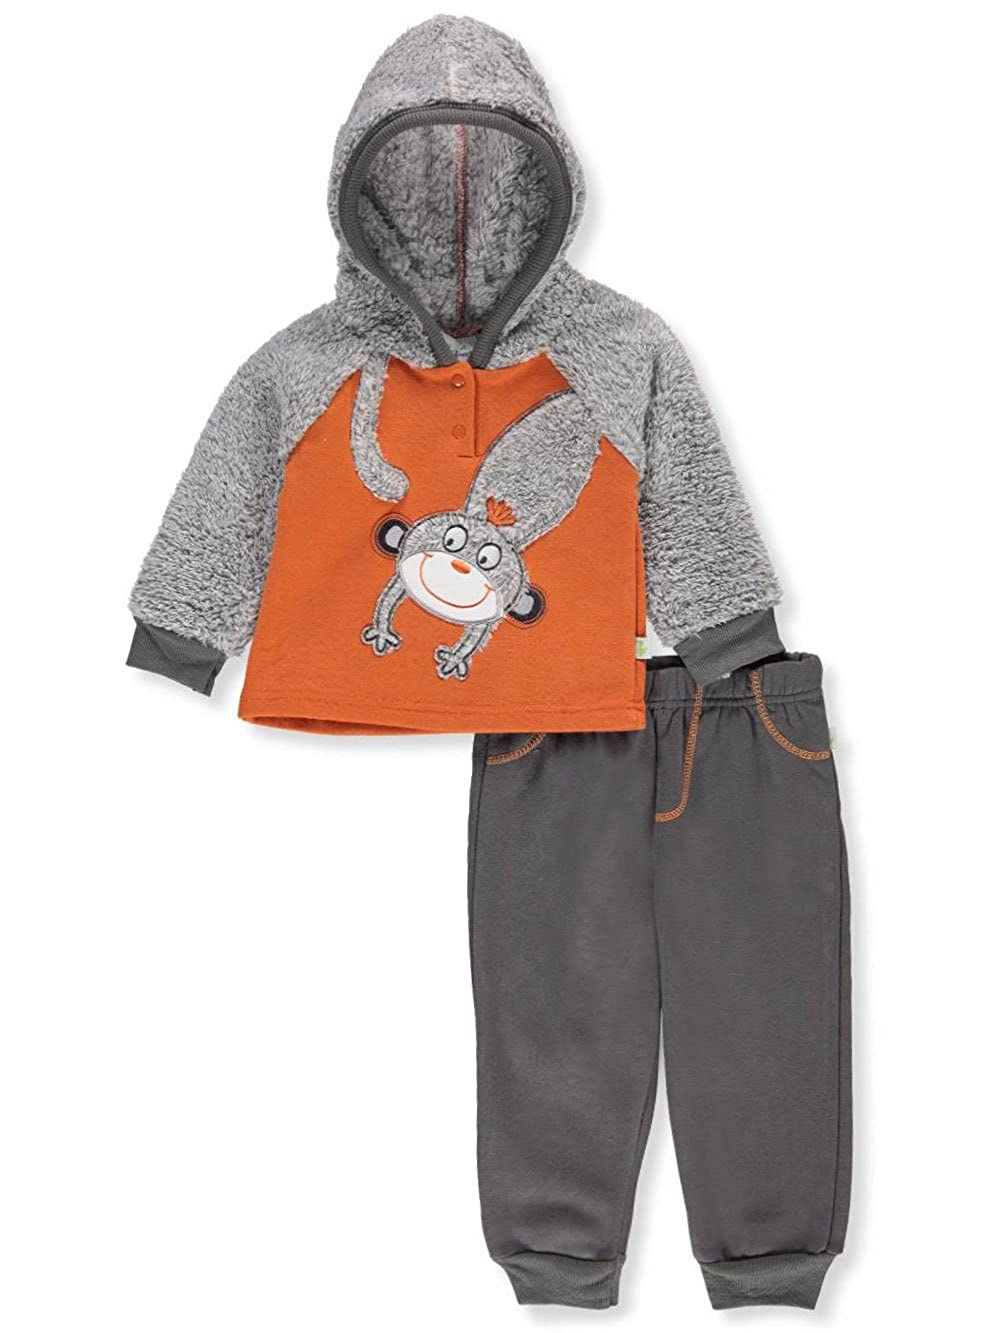 b220ac9fa Duck Duck Goose Baby Boys' 2-Piece Pants Set Outfit - Orange/Multi, 0-3  Months: Amazon.ca: Clothing & Accessories